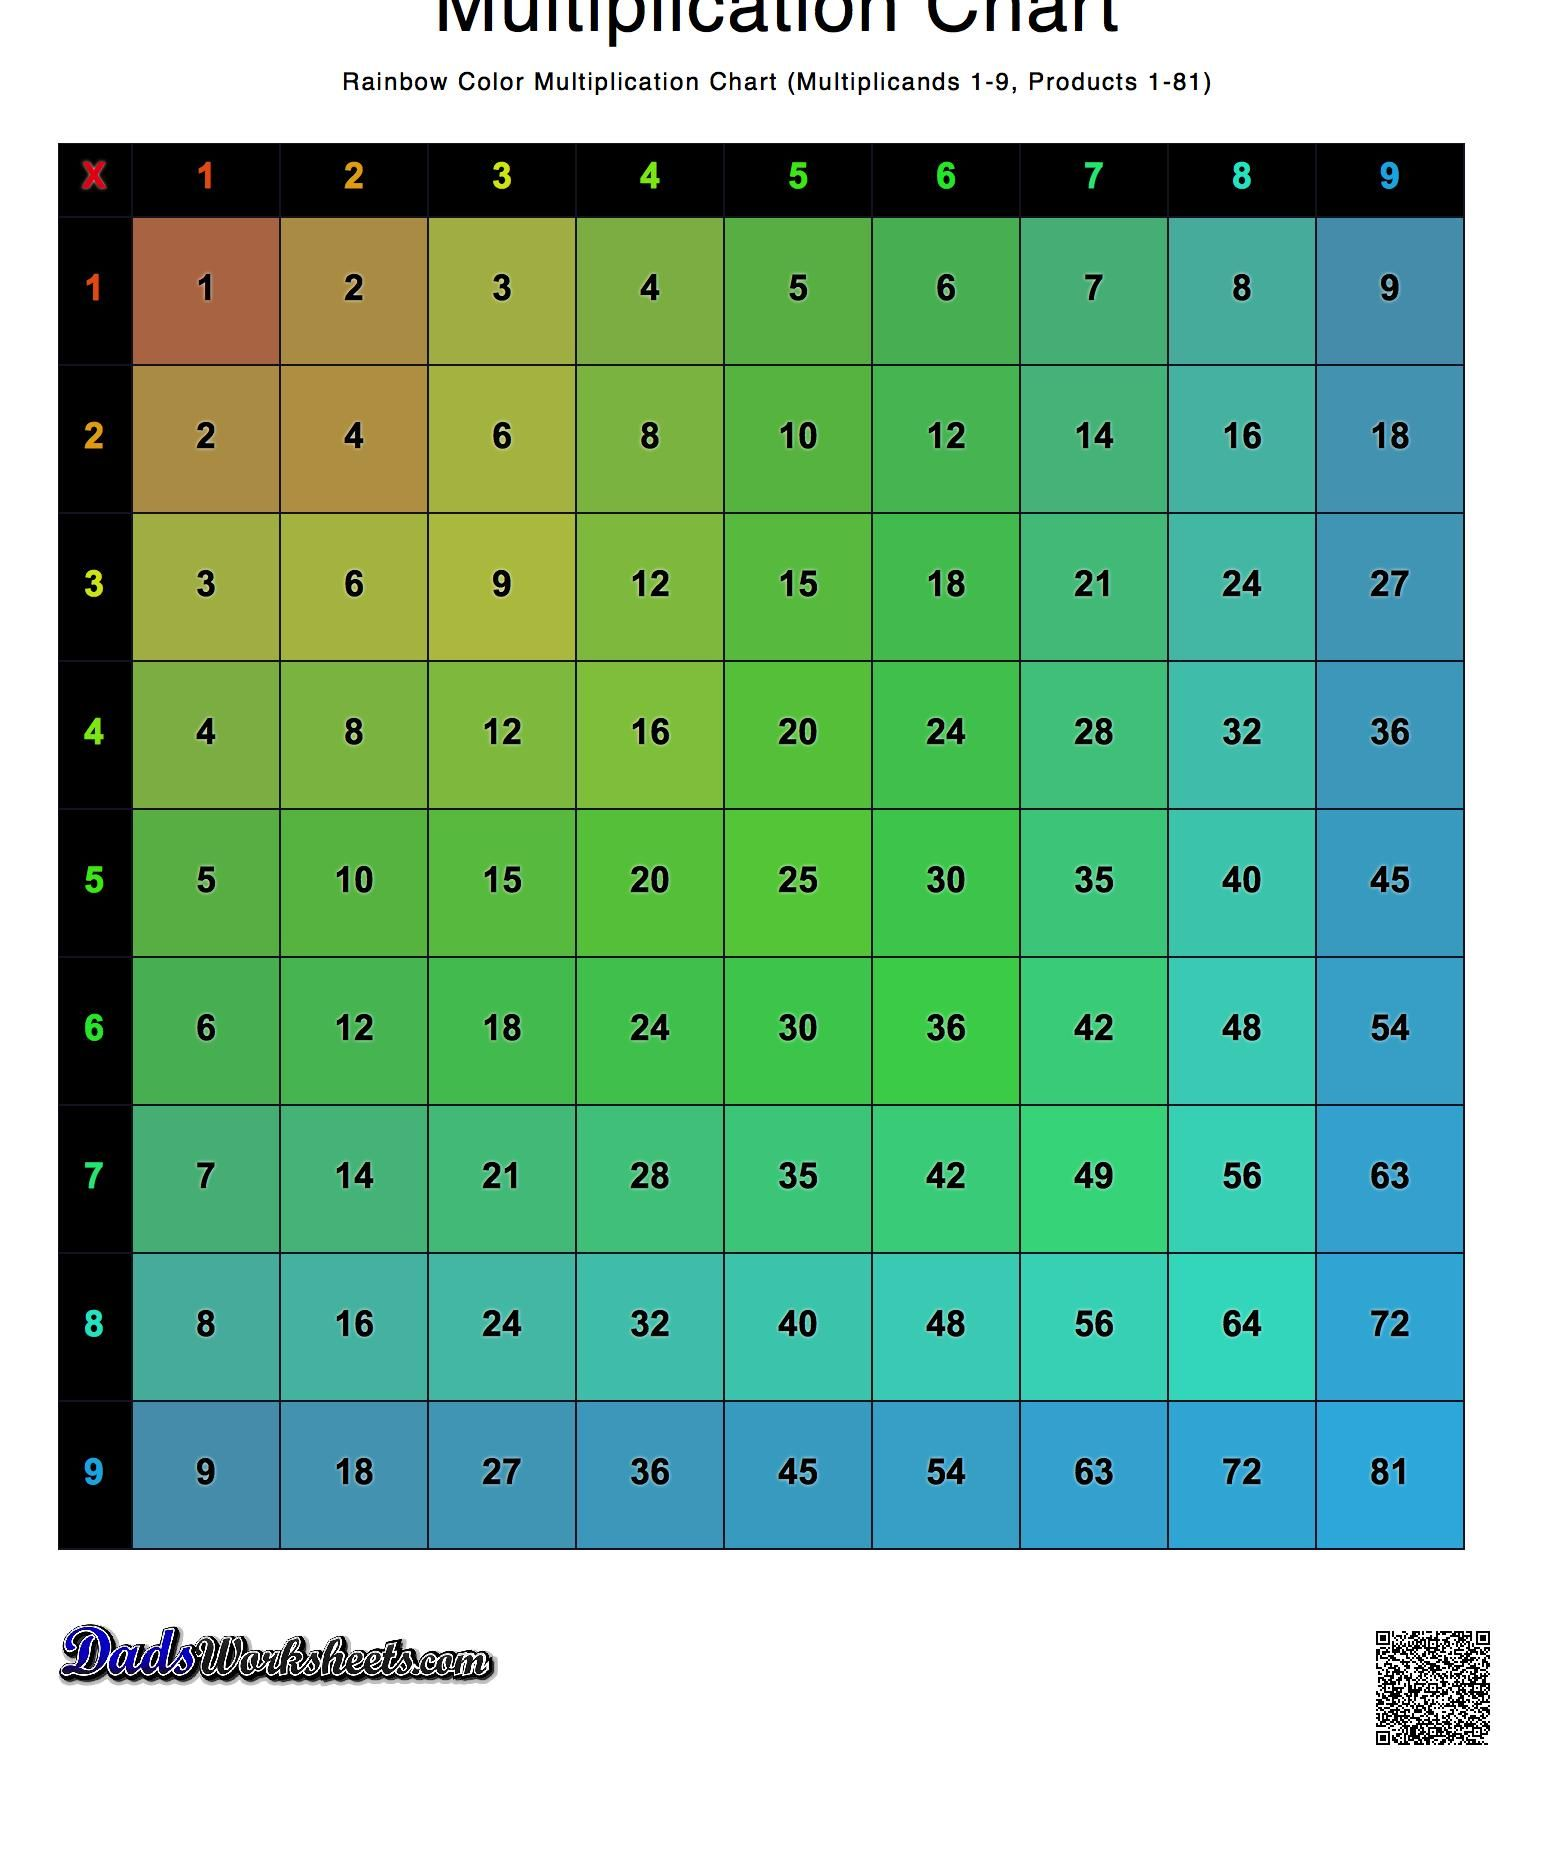 Color Multiplication Chart Rainbow